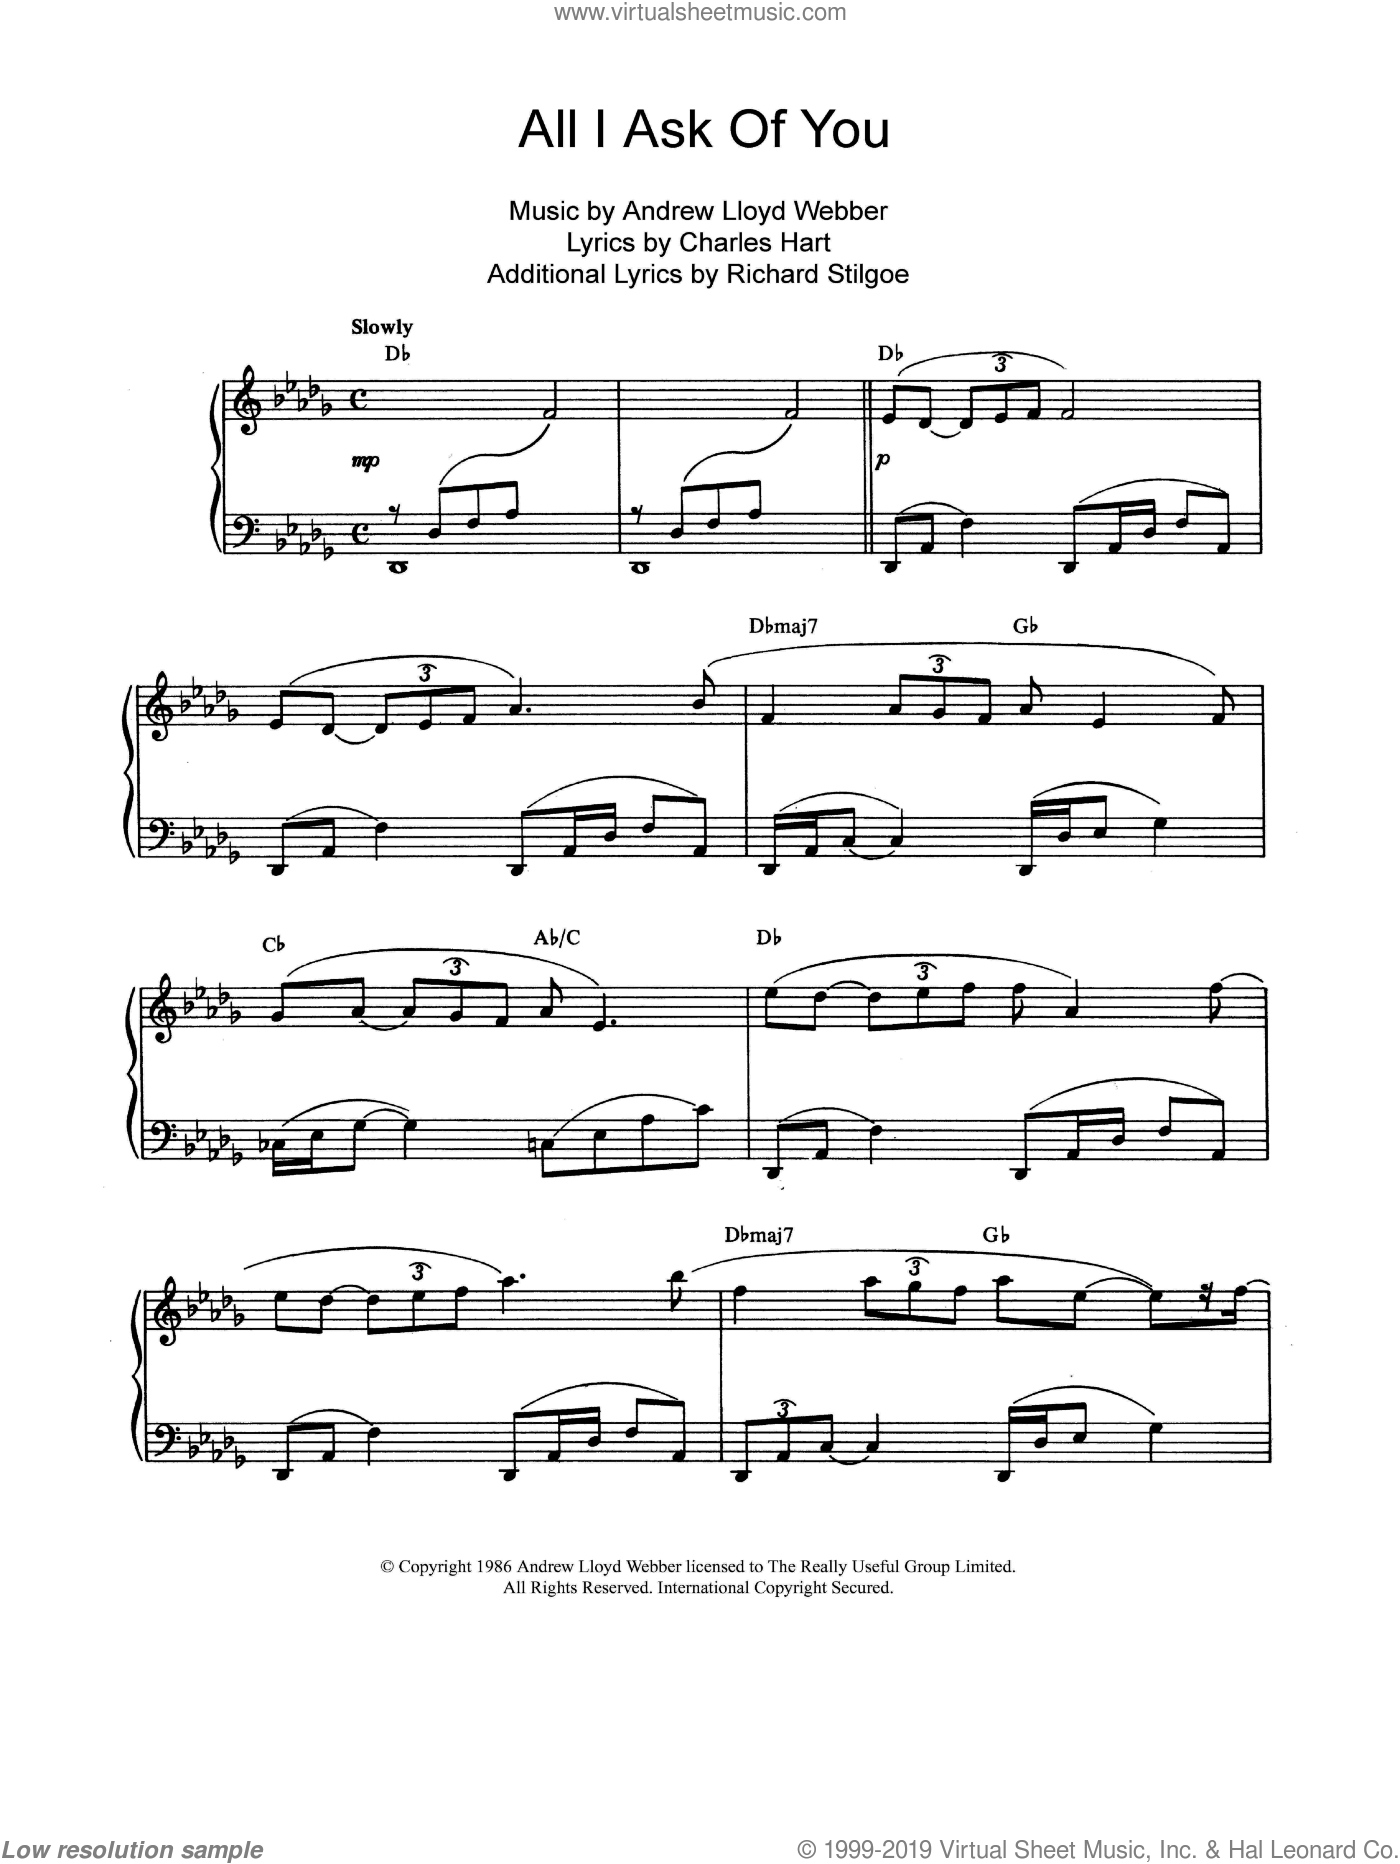 All I Ask Of You sheet music for piano solo by Richard Stilgoe, Andrew Lloyd Webber and Charles Hart